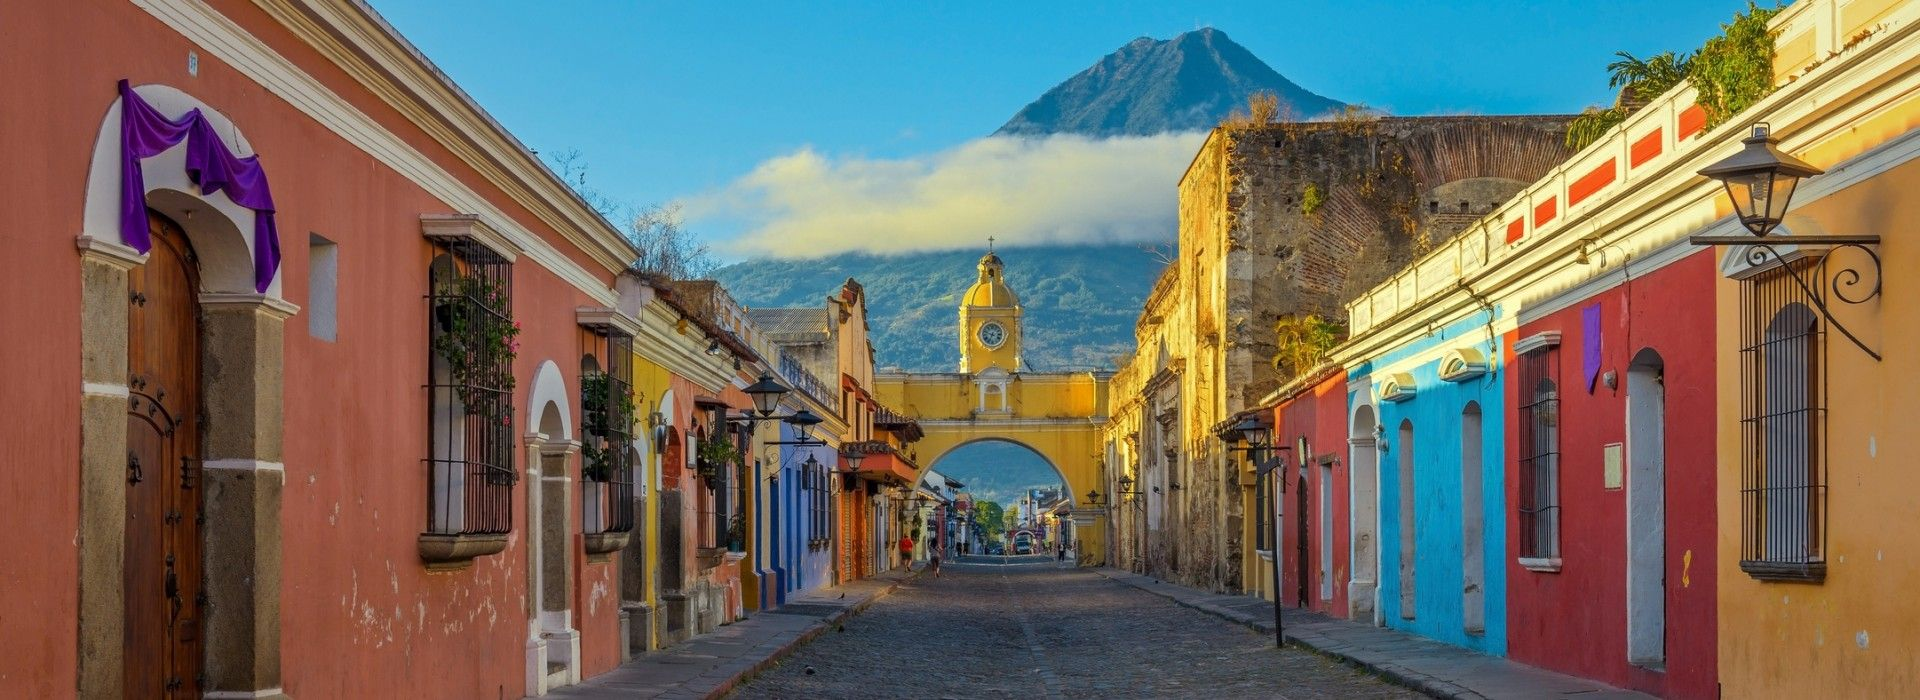 Sightseeing Tours in Central America